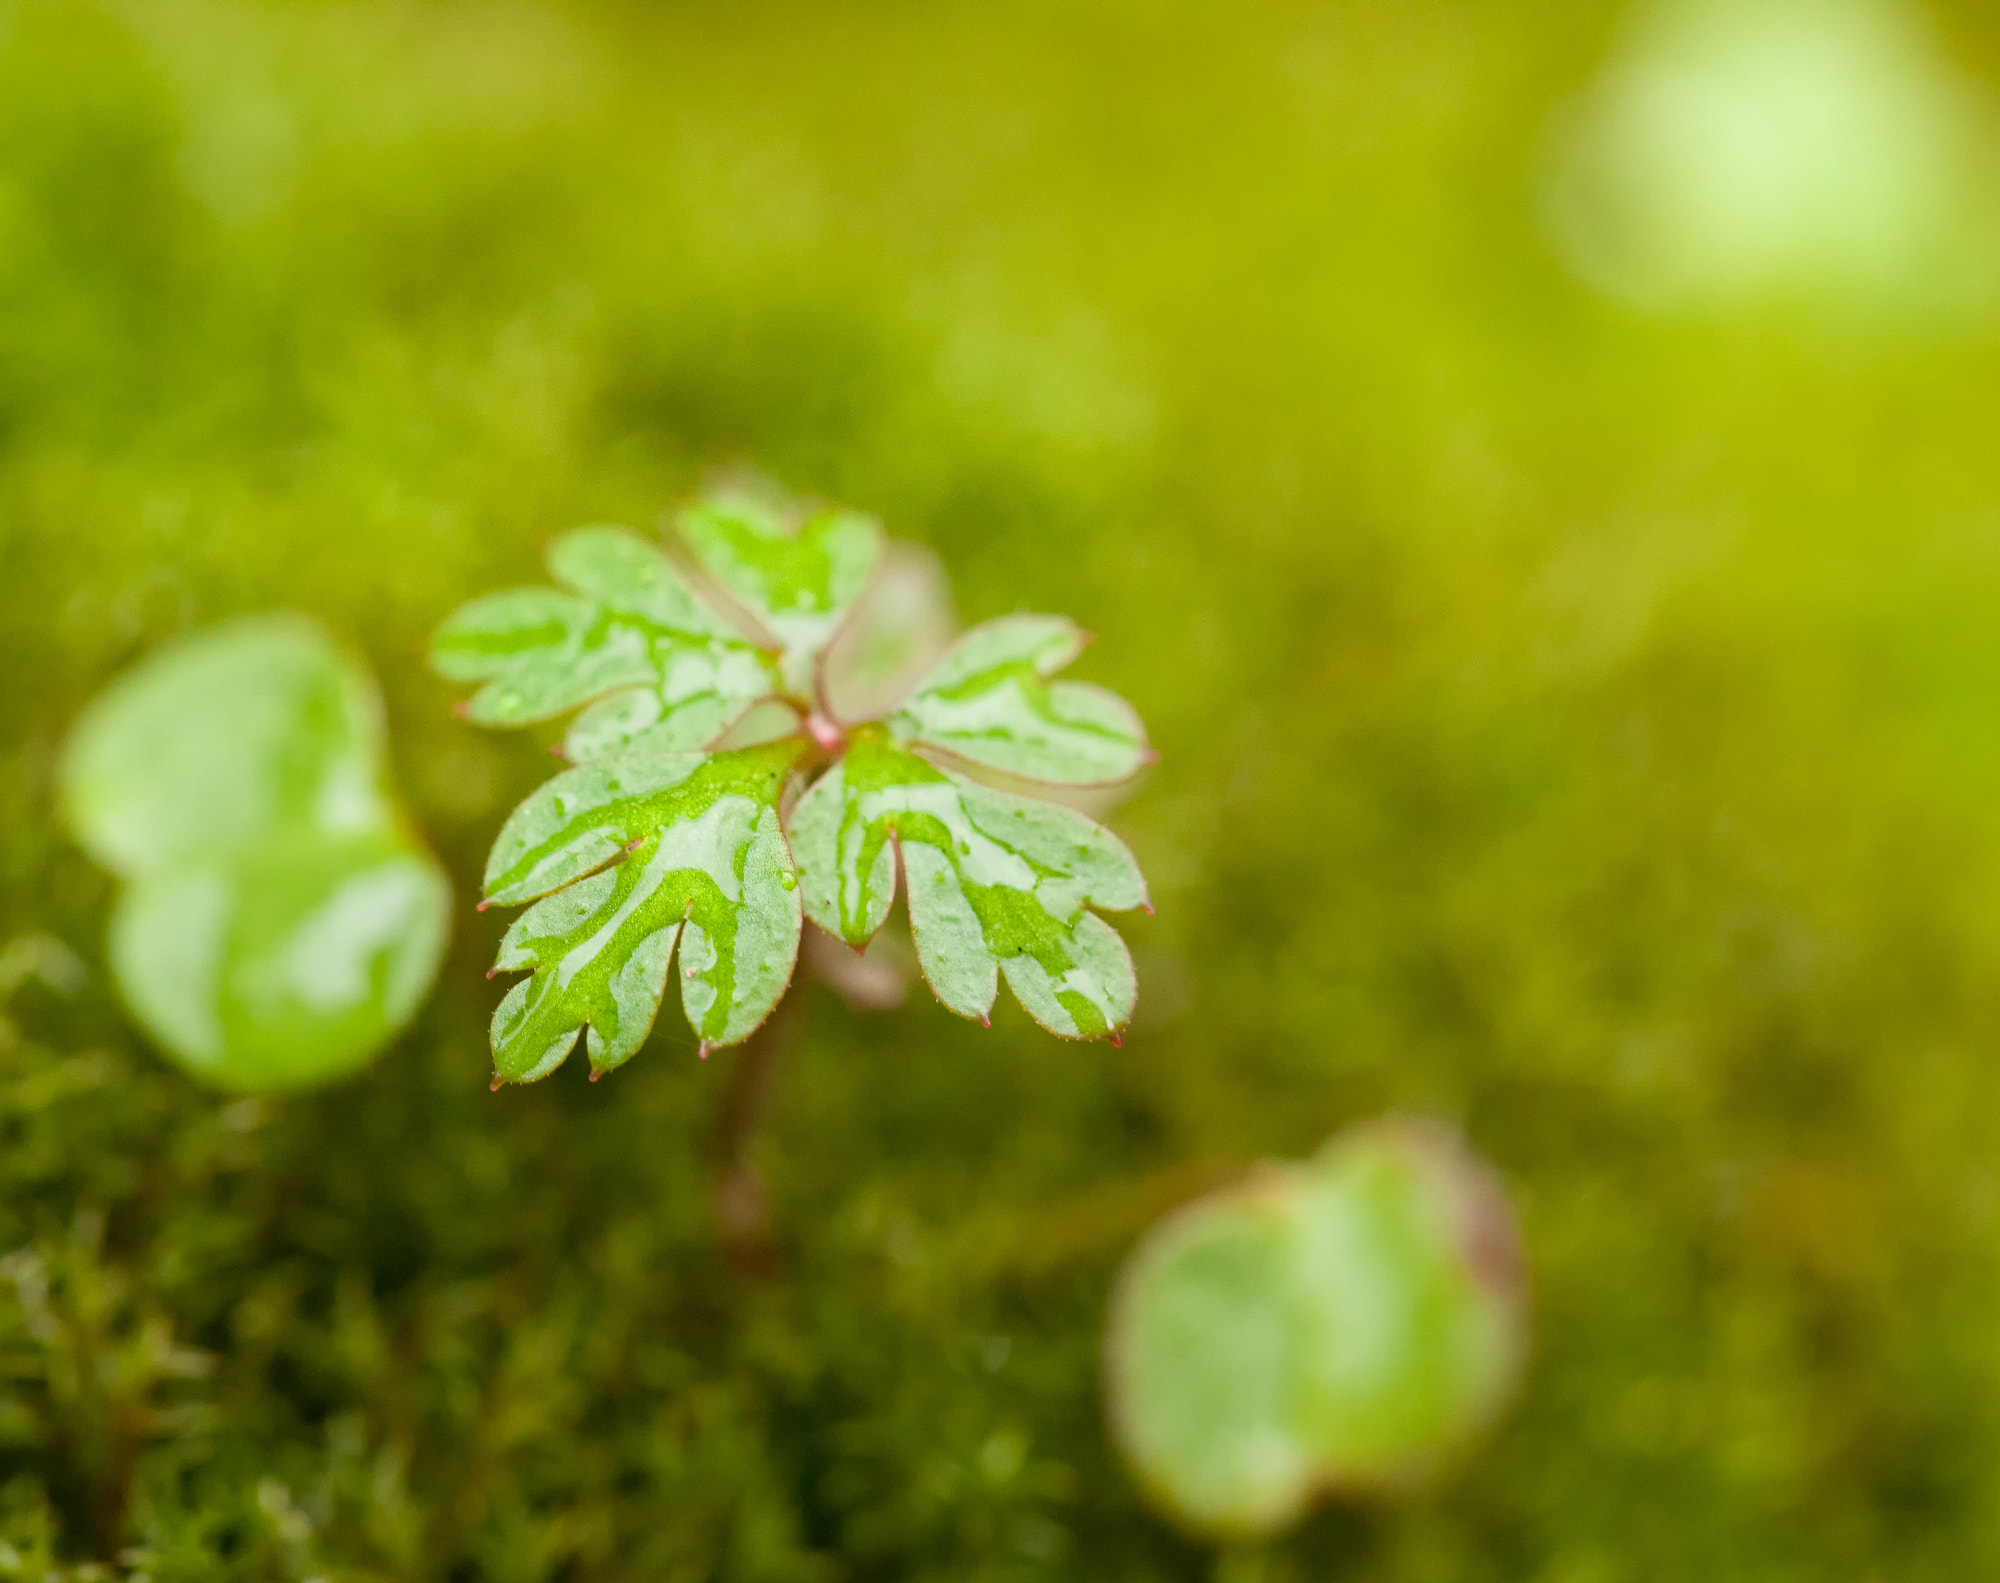 Photograph Moss Story by Joseph Calev on 500px